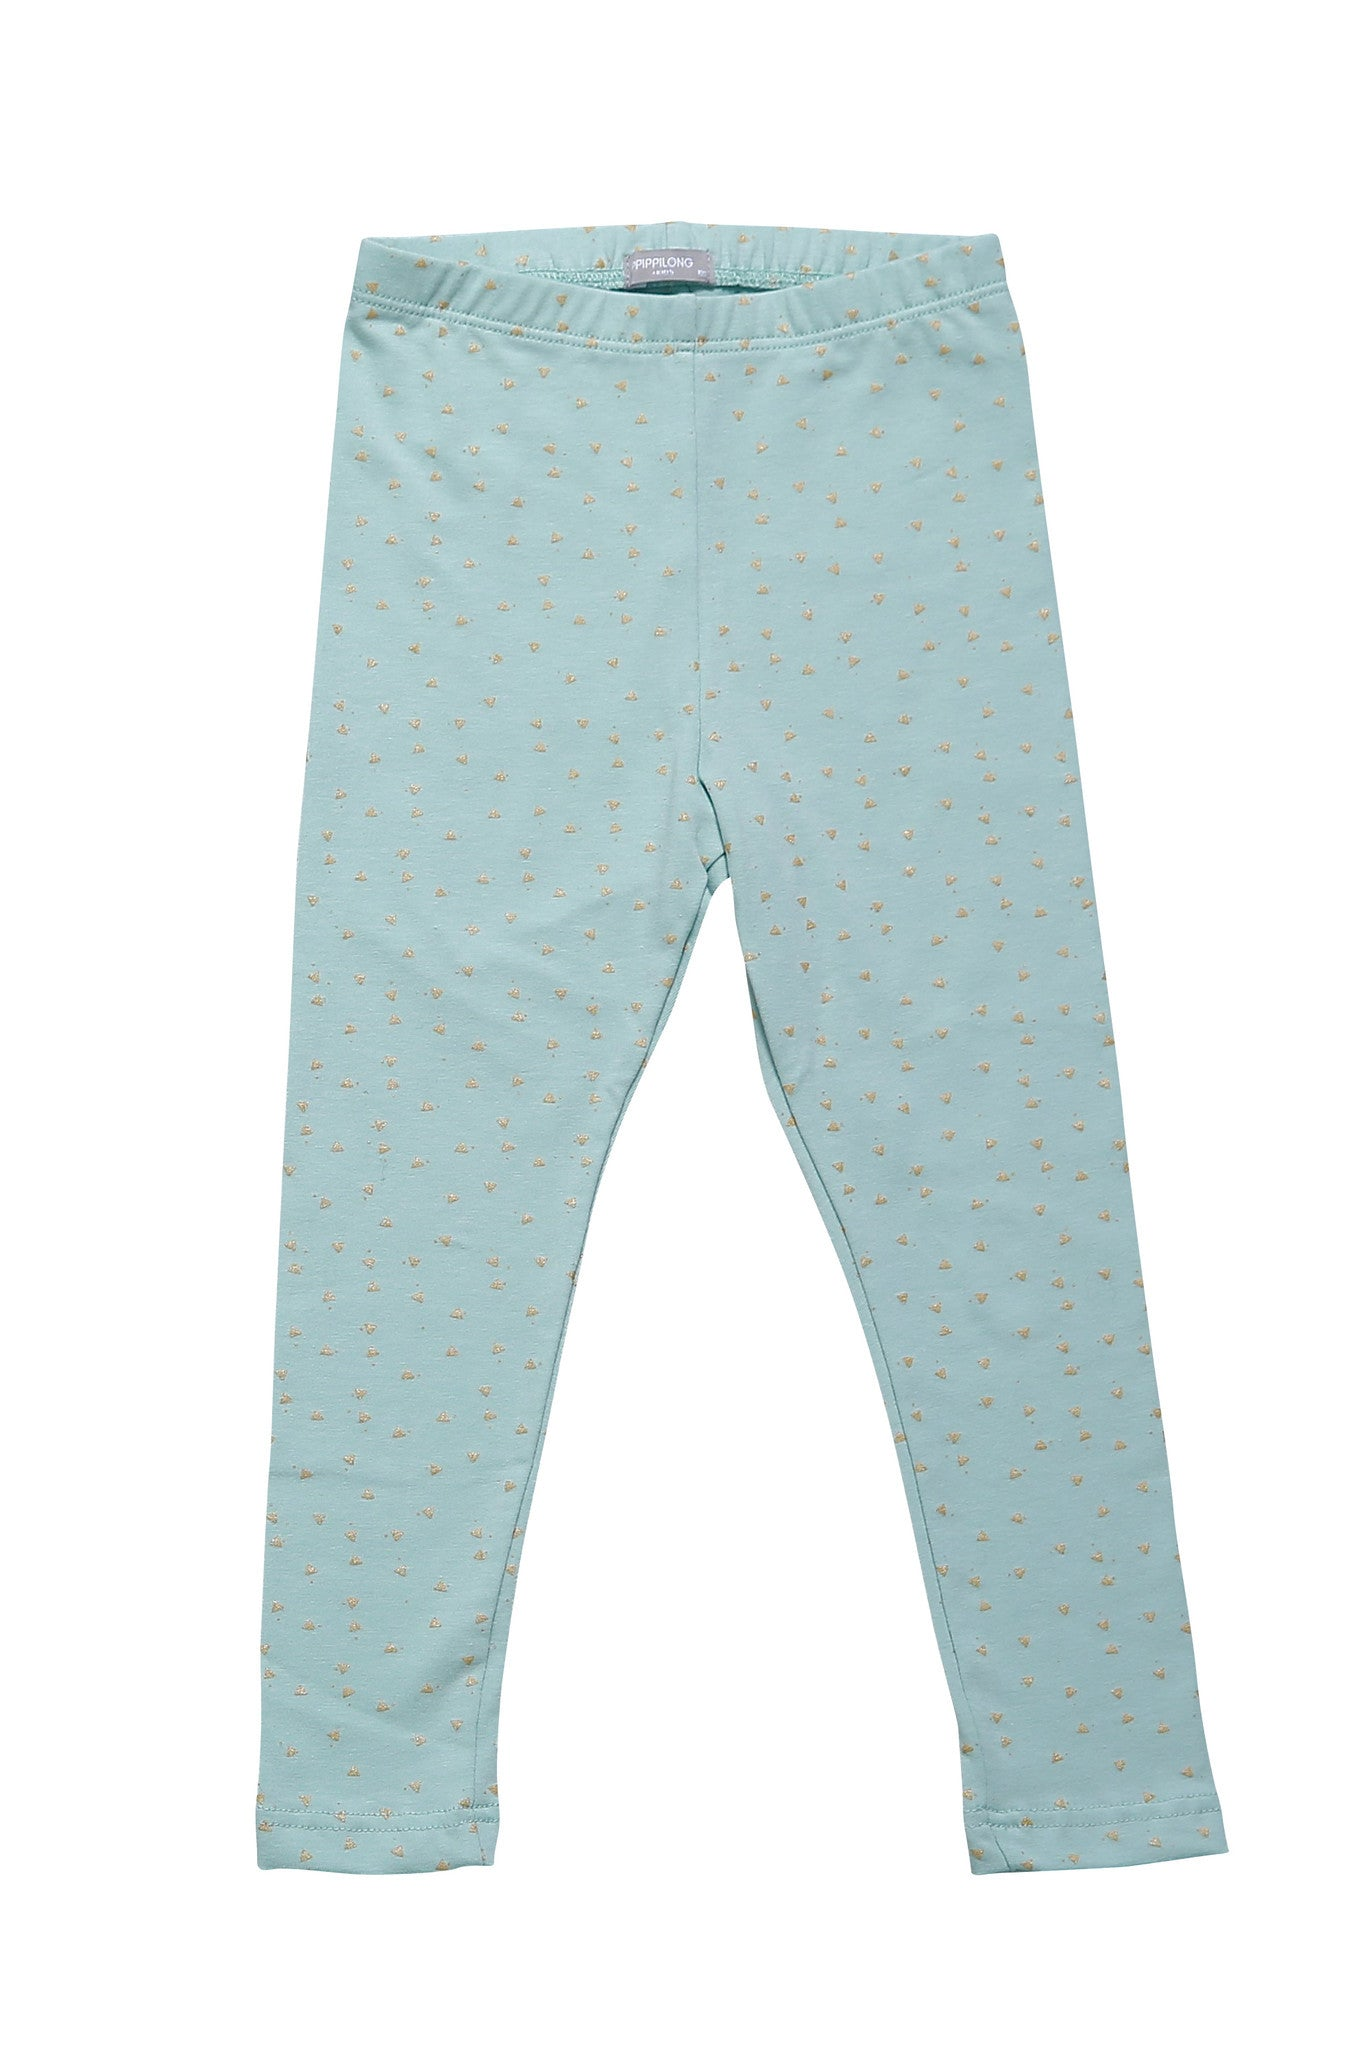 Leggings - Girls Essentials Mint Twinkle Leggings